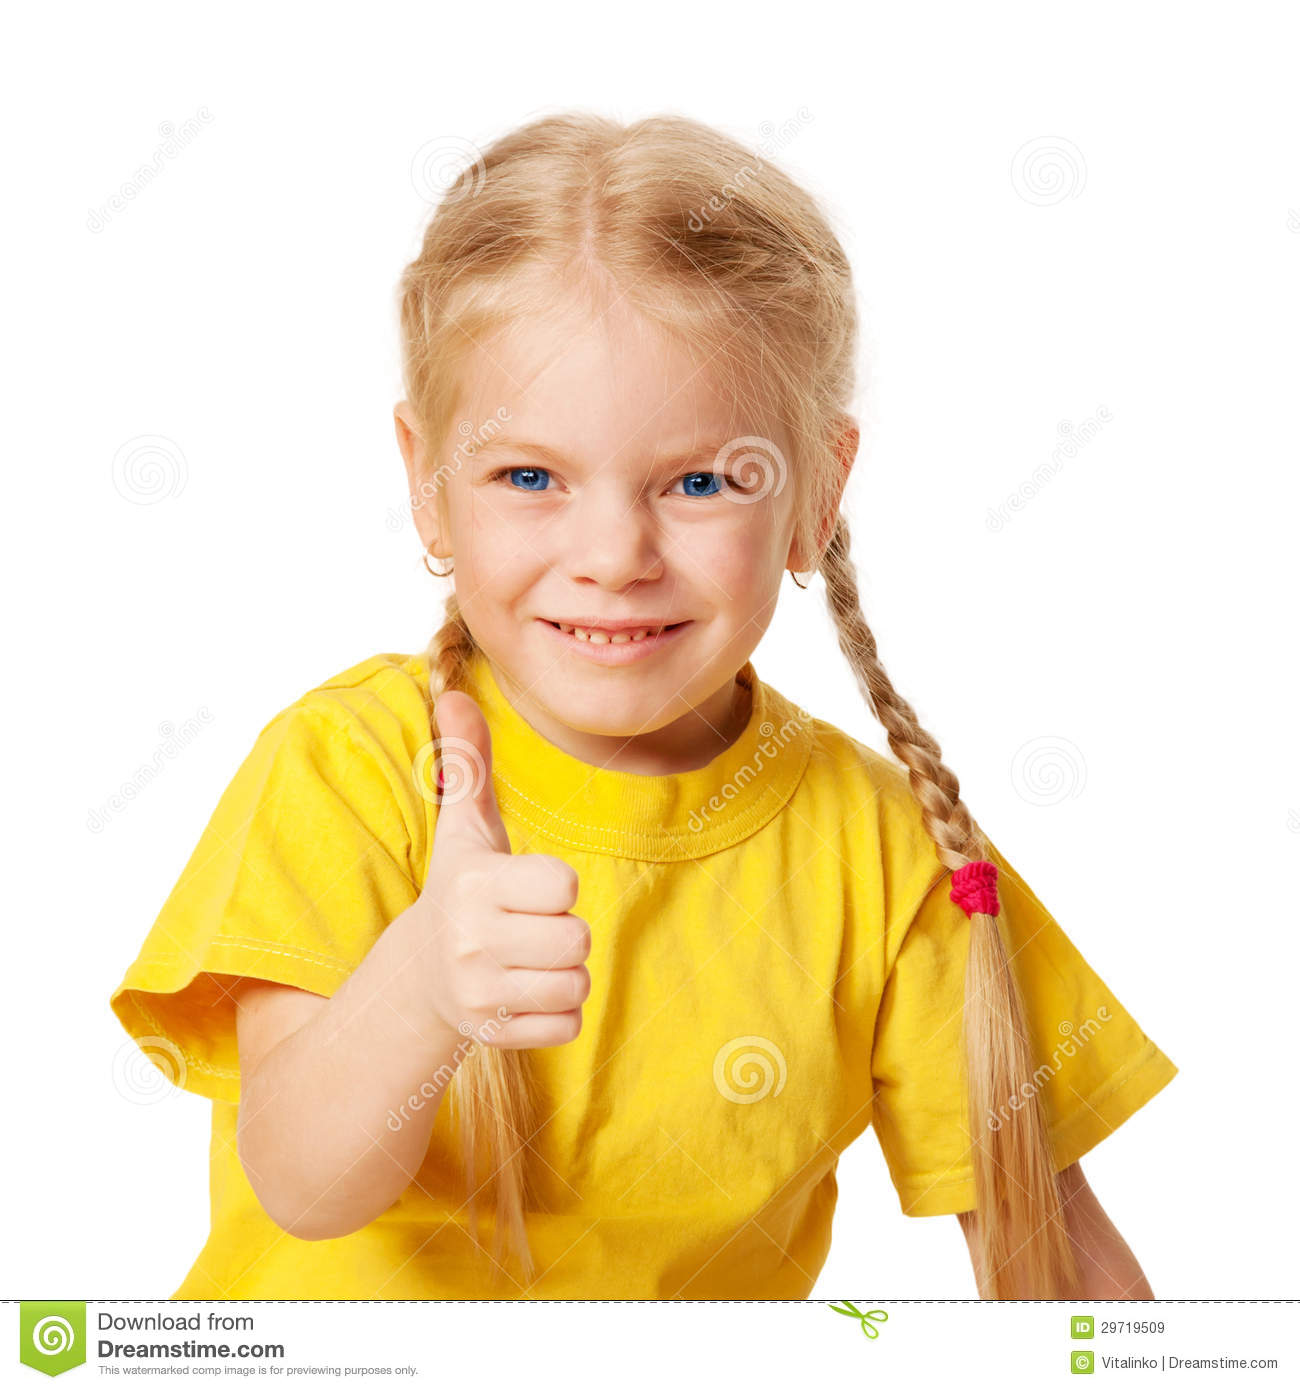 Stock Photo Smiling Woman Glasses Thinking Dreaming Education School People Gesture Concept Image43182440 as well Royalty Free Stock Images Cute Child Showing Thumbs Up Isolated White Background Image29719509 besides Long Exposure Photographer Works Light Moves together with Medicinal Capsule Crying Out Loud Emoji in addition Apraxia. on gesture objects